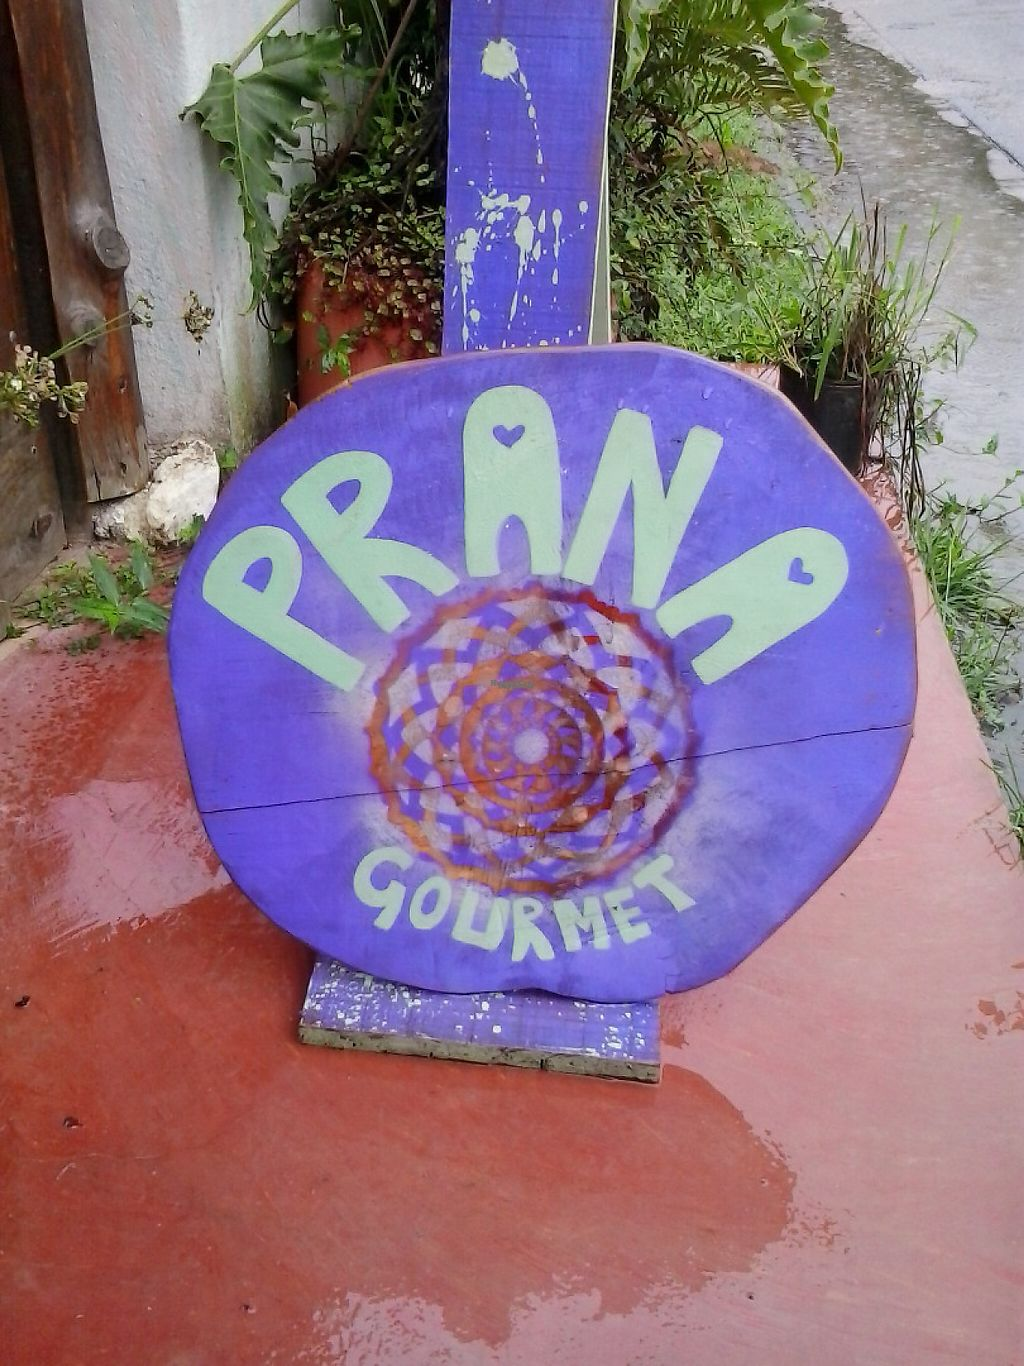 """Photo of Prana Gourmet  by <a href=""""/members/profile/laranjatomate"""">laranjatomate</a> <br/>Logo <br/> April 4, 2017  - <a href='/contact/abuse/image/89728/244507'>Report</a>"""